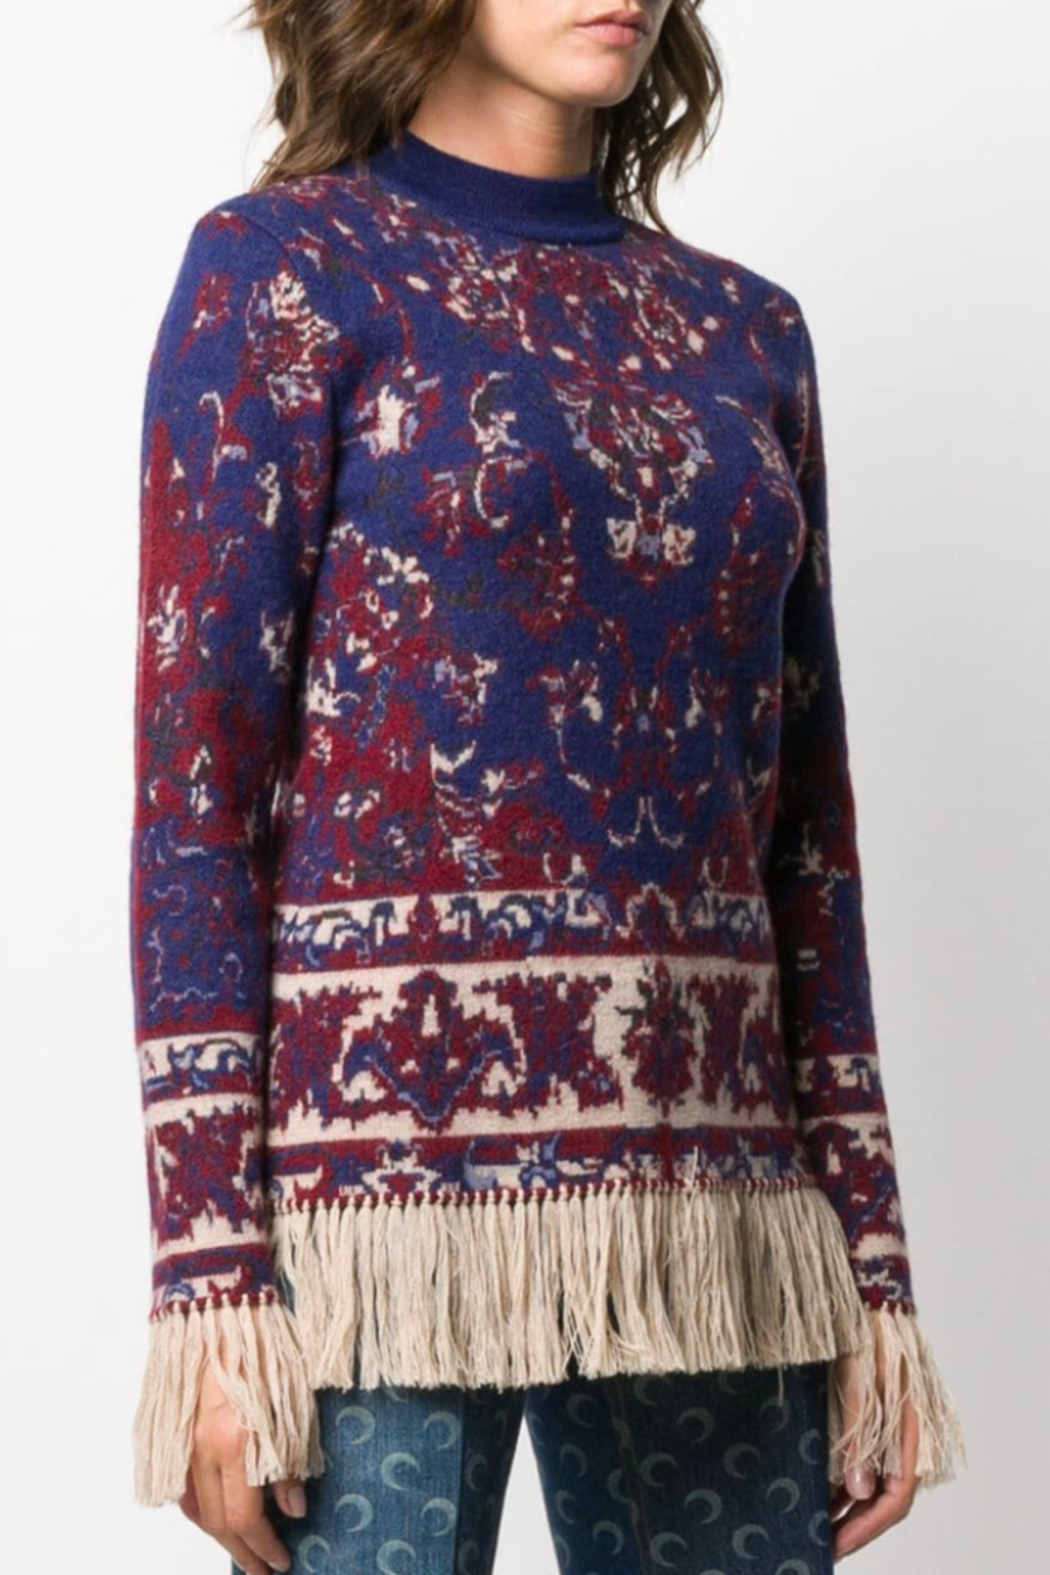 Paco Rabanne KNIT PULLOVER WITH FRINGE - Main Image